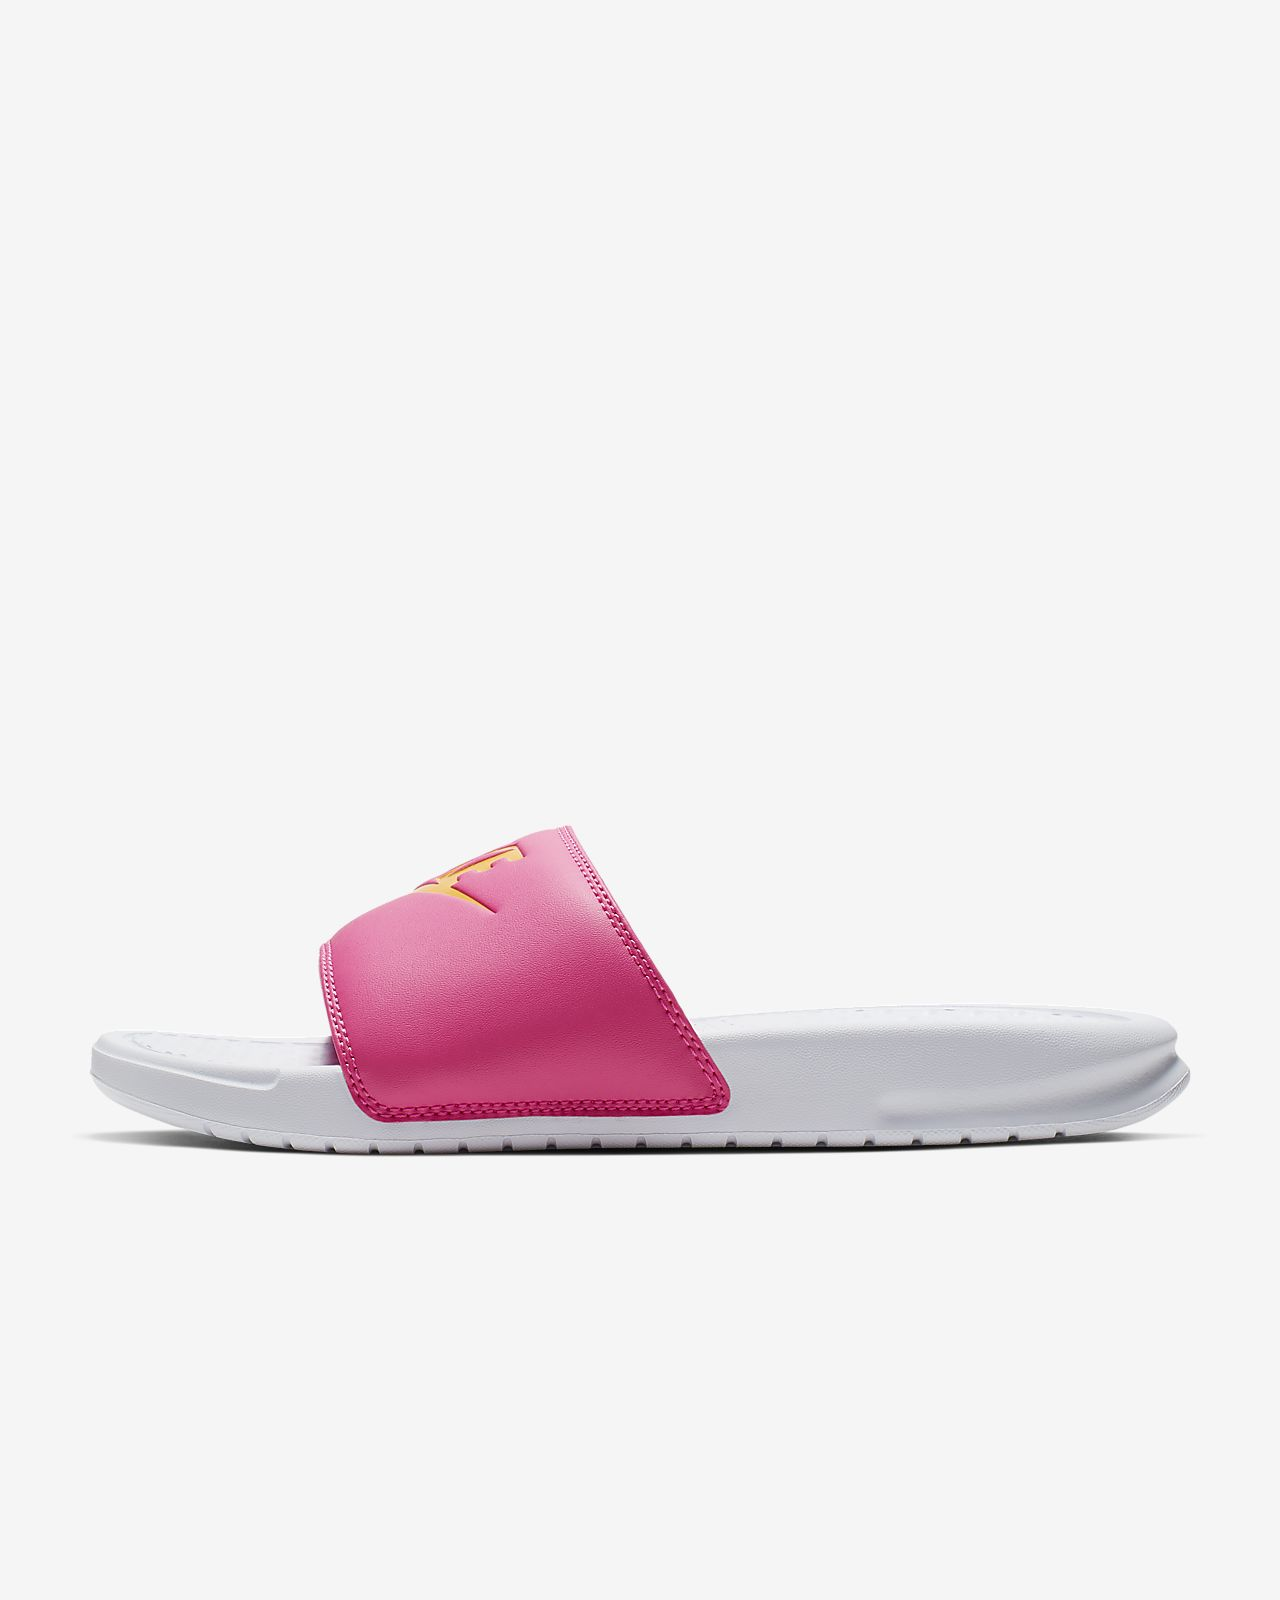 huge discount 9b745 5441c Low Resolution Nike Benassi Women s Slide Nike Benassi Women s Slide